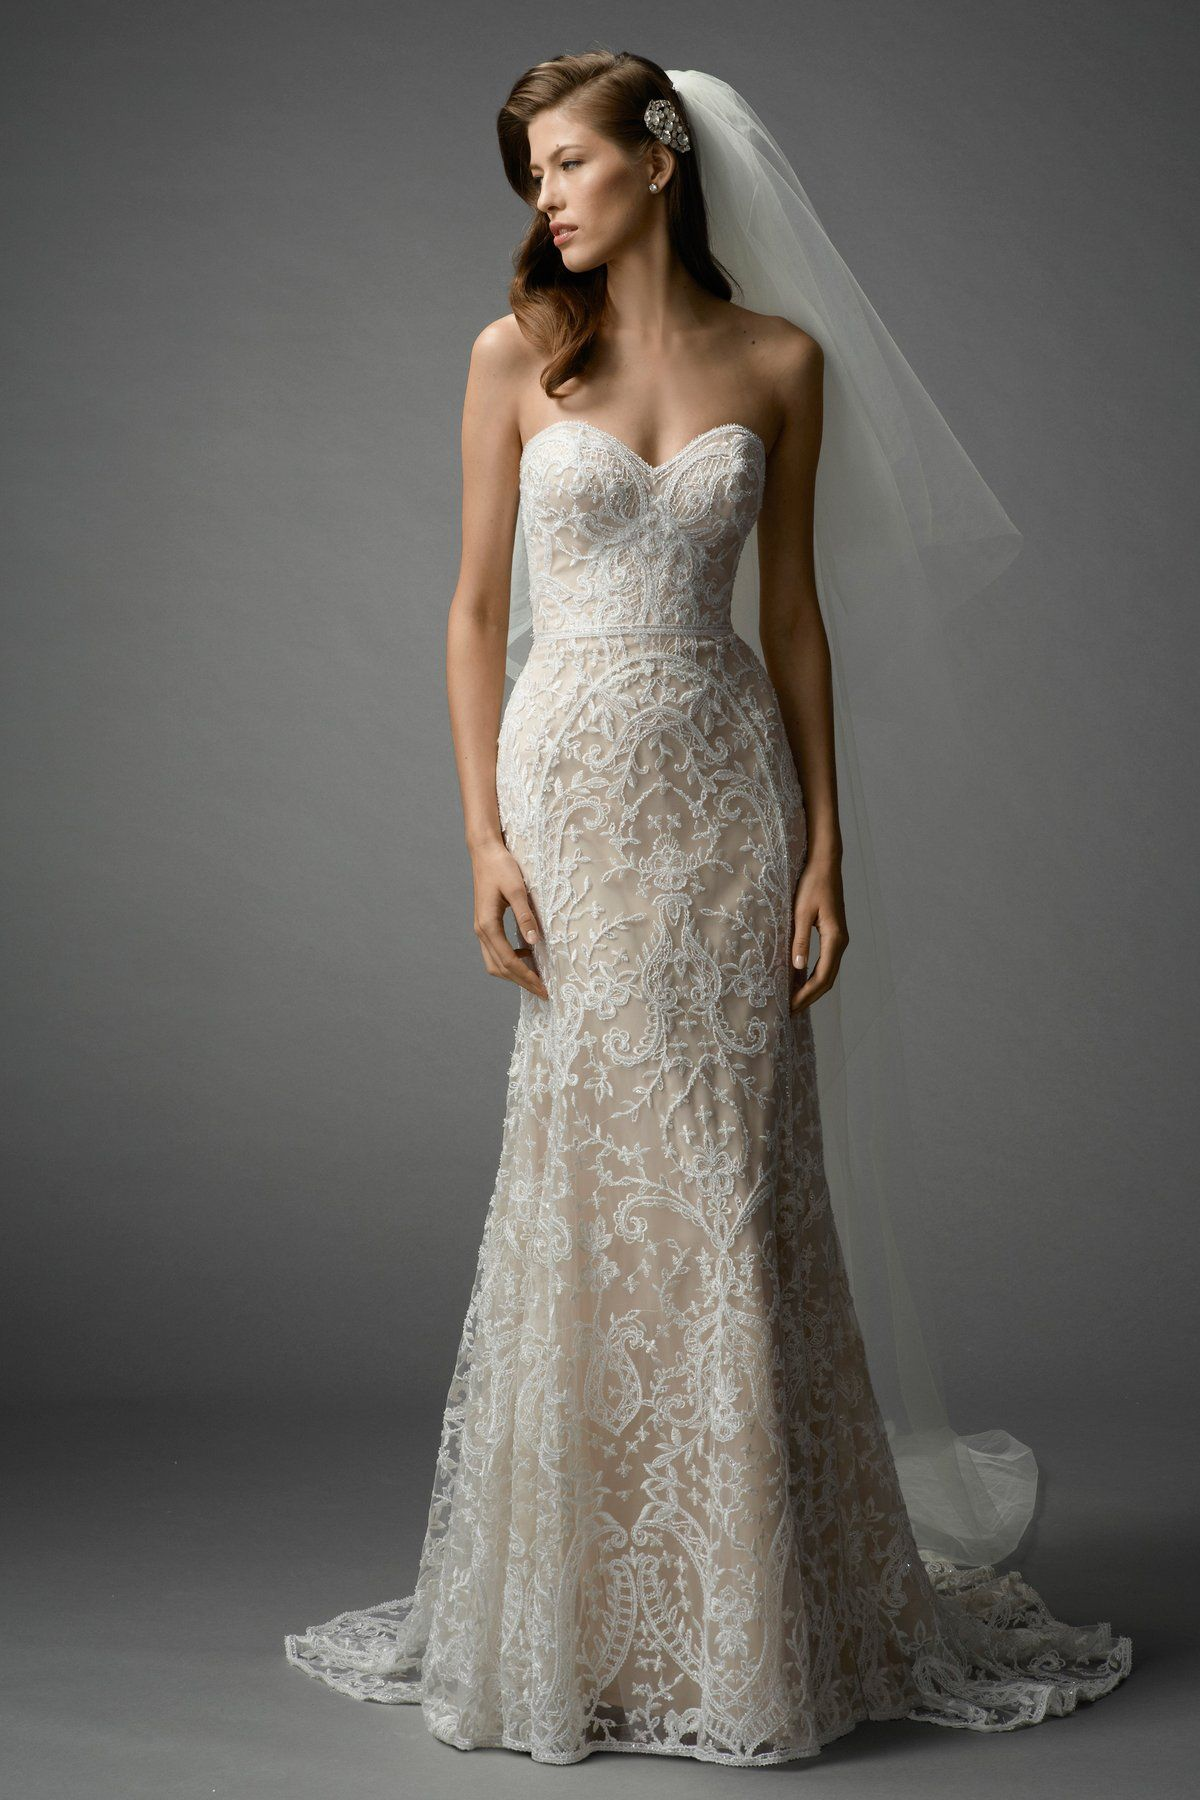 Watters Nyra Gown Size 2 Wedding Dress | Short legs, Gowns and Legs